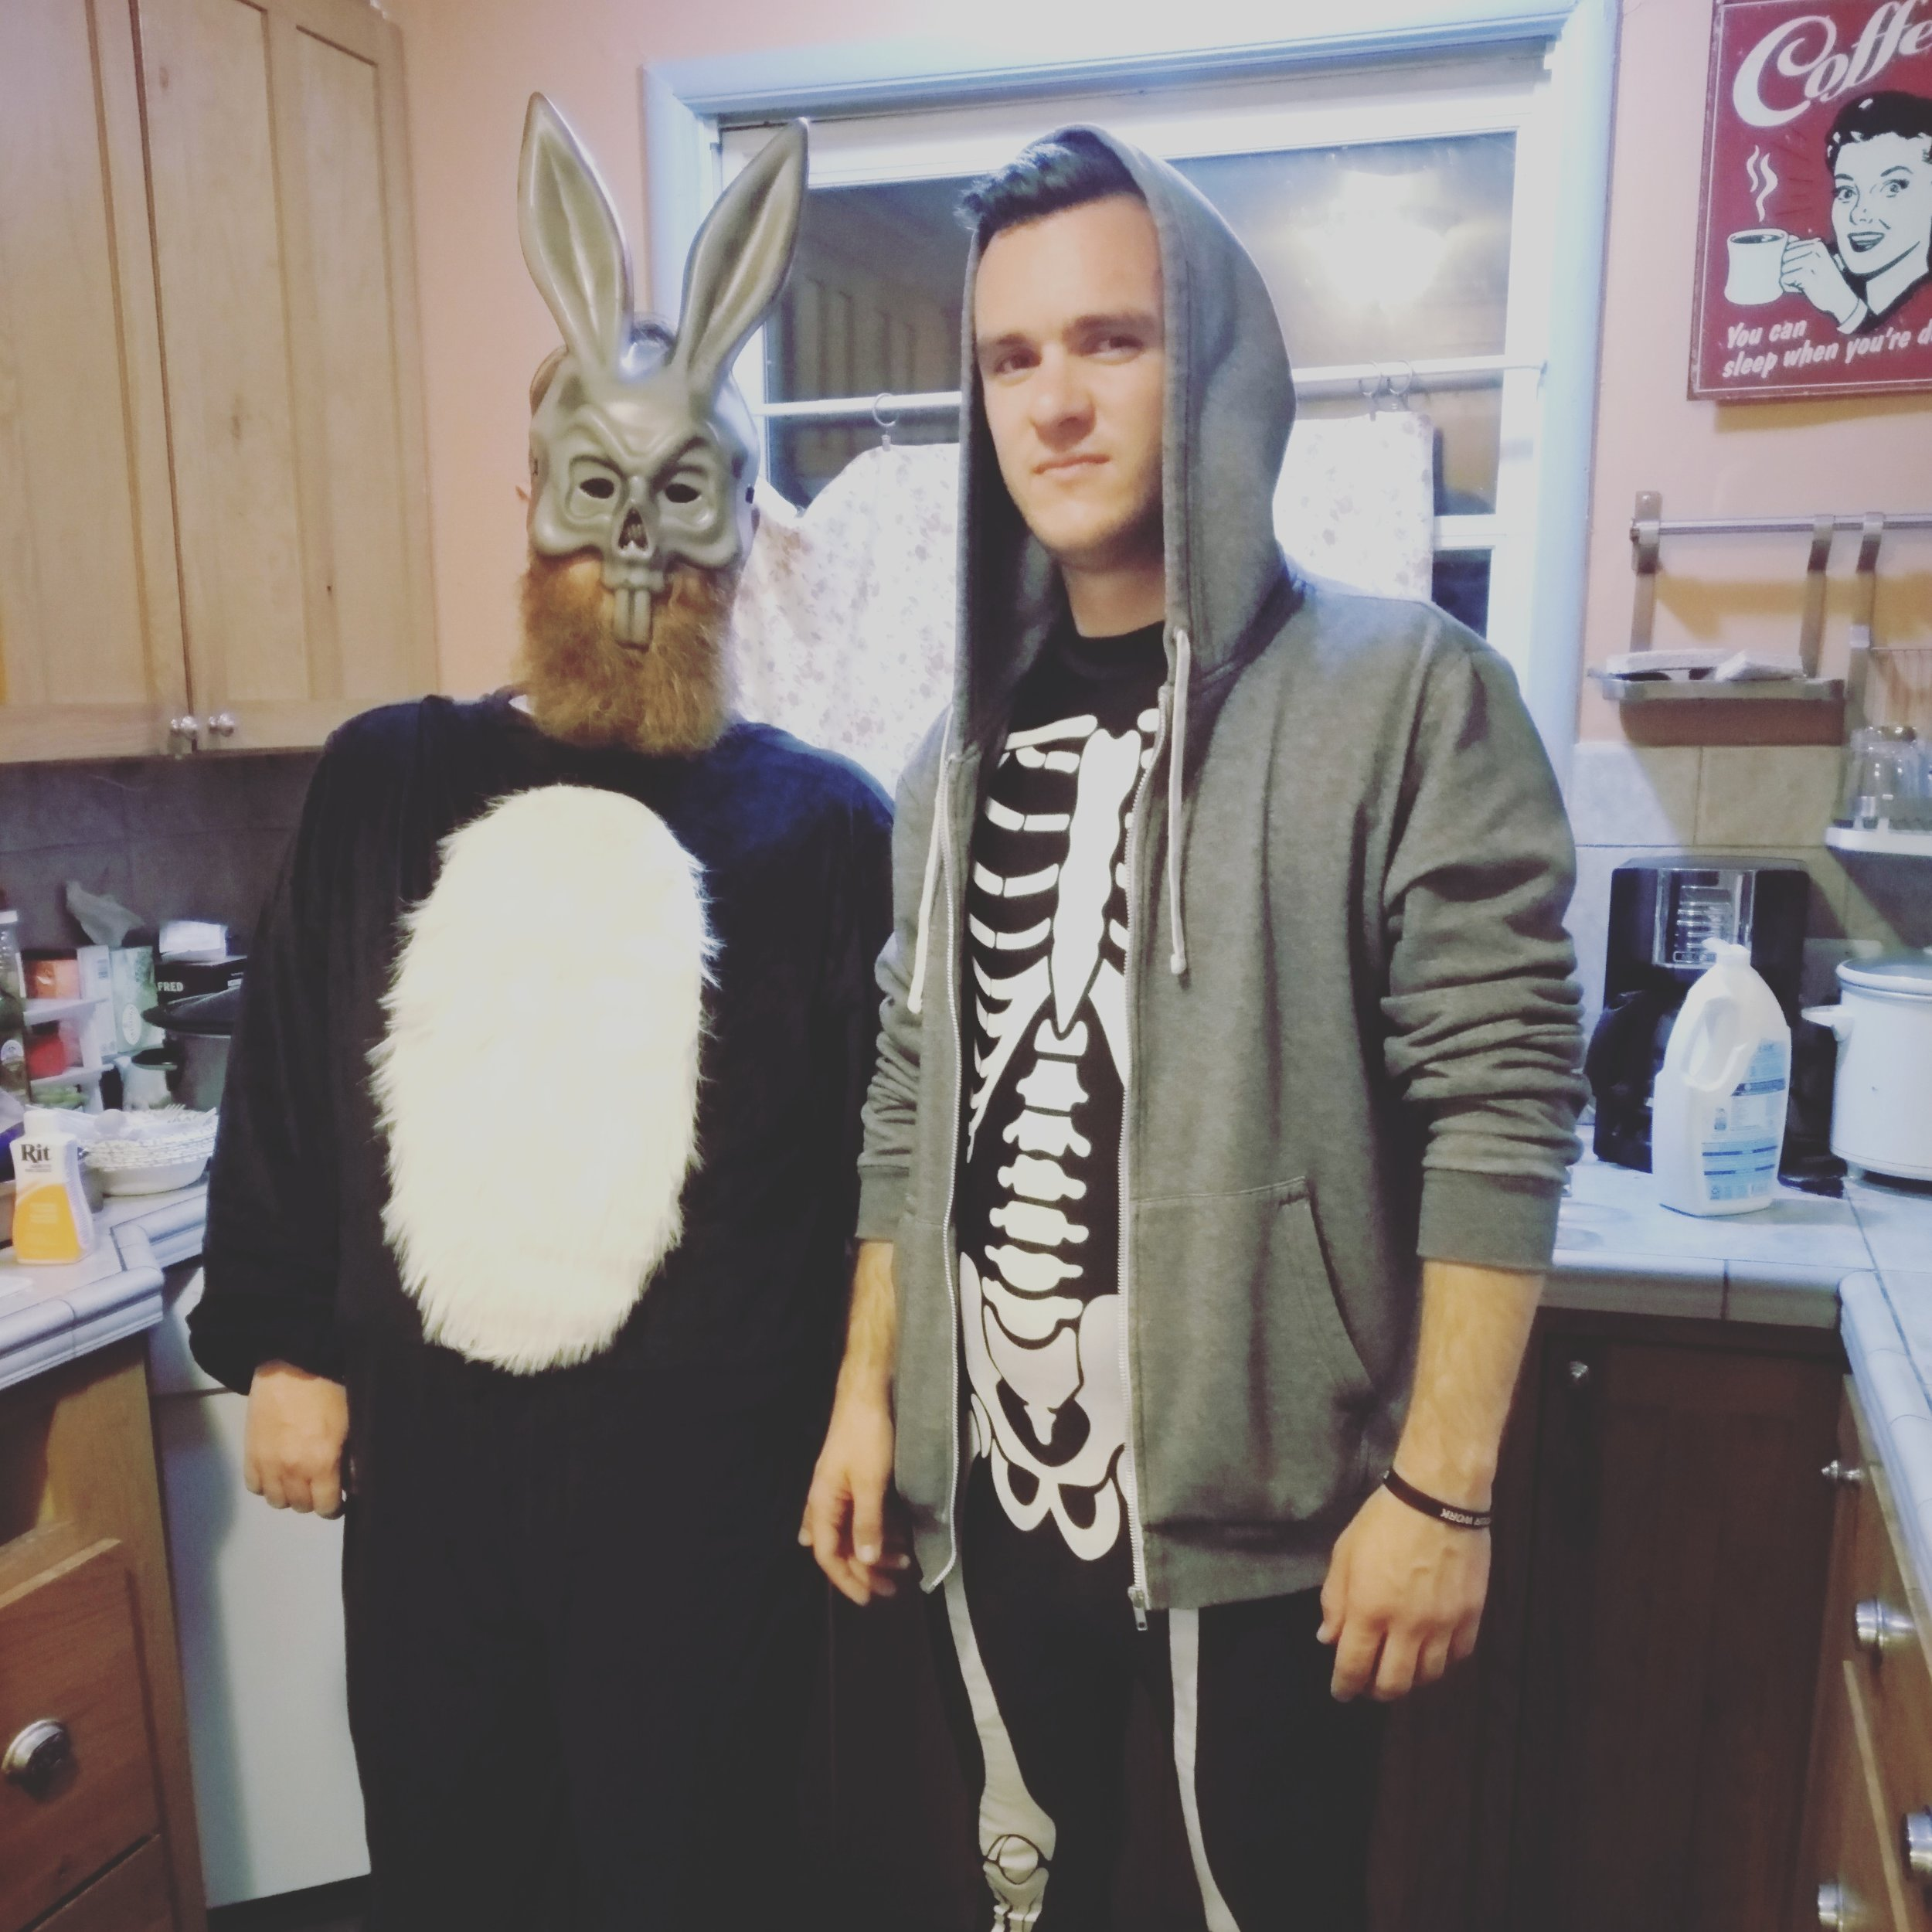 My brother Joel and I dressed up and performed as Donnie Darko and Frank the Bunny